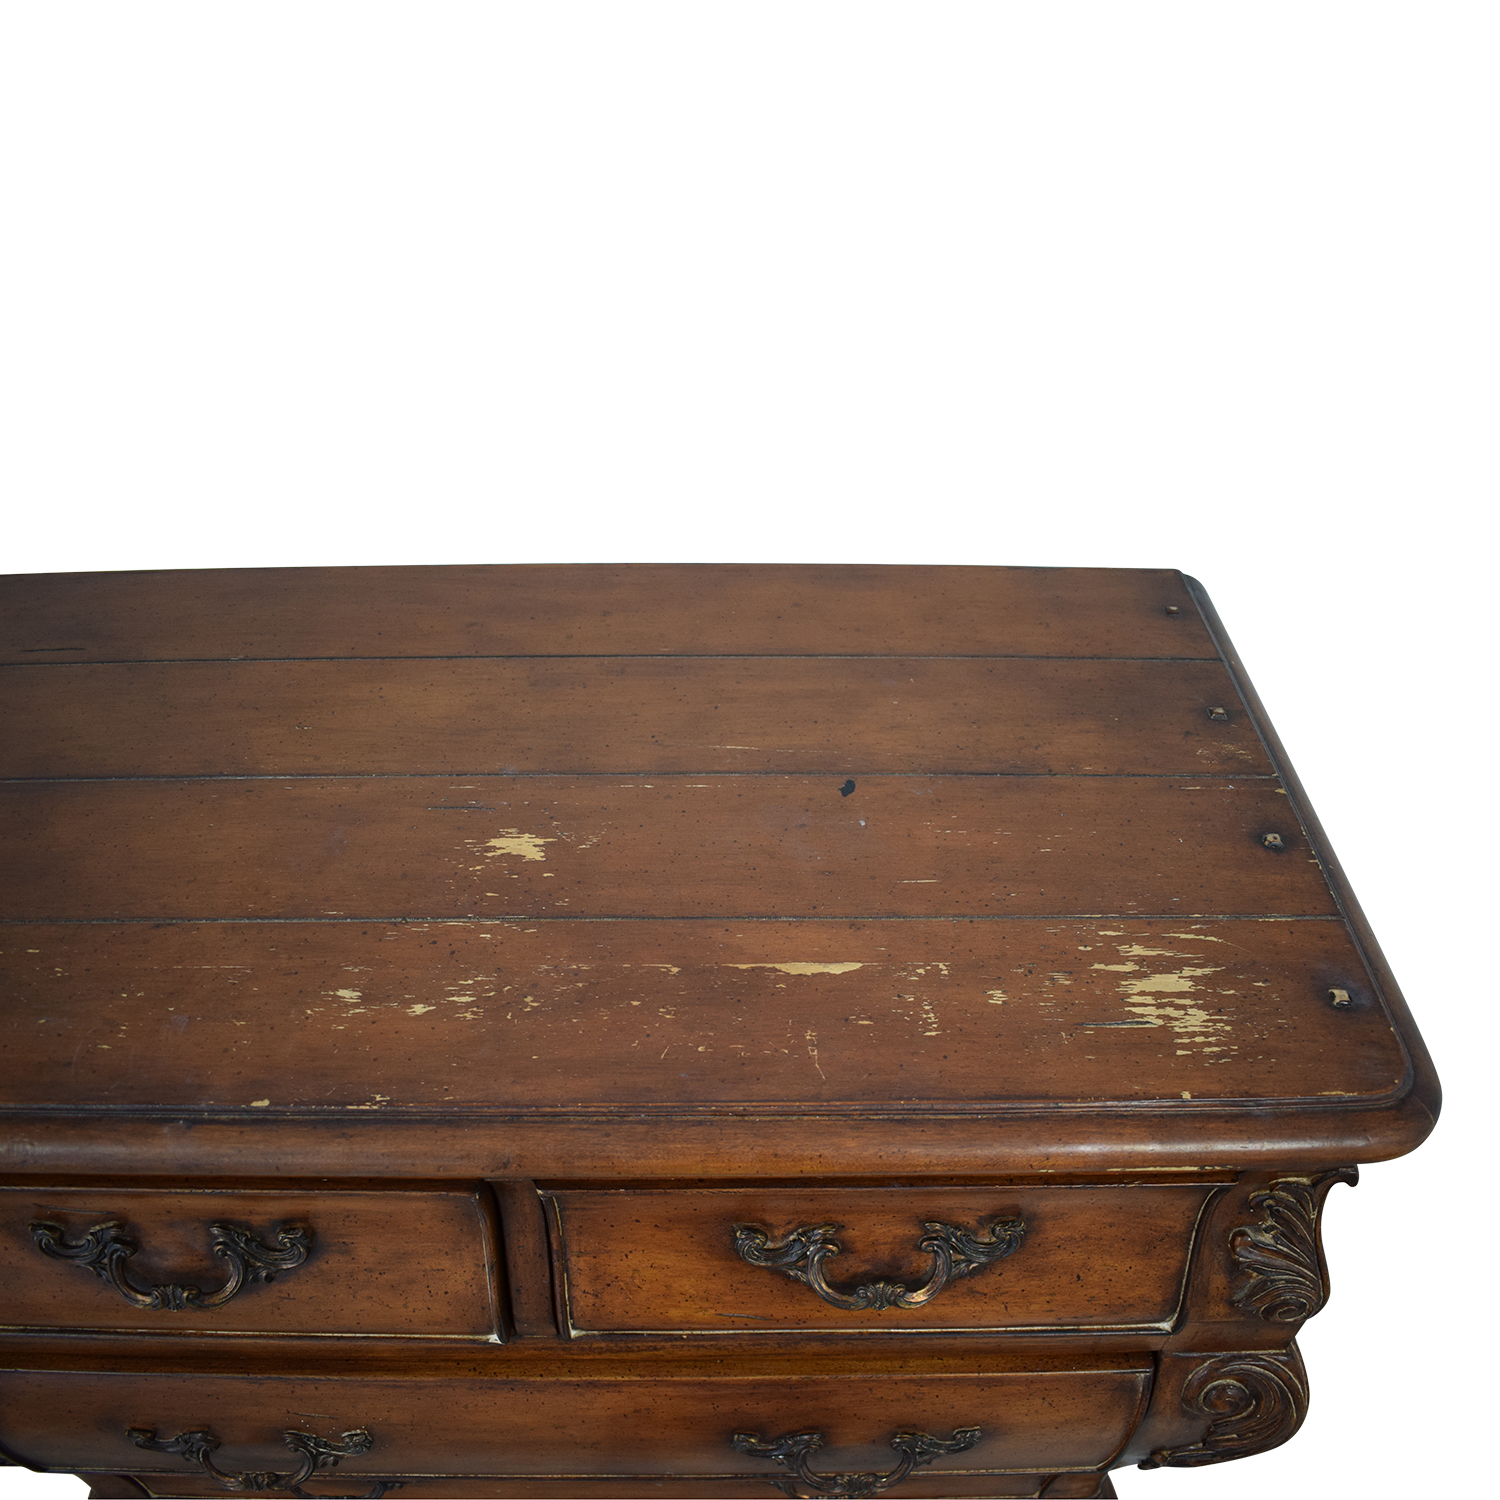 Thomasville Thomasville Chateau Provence Bachelor's Chest second hand